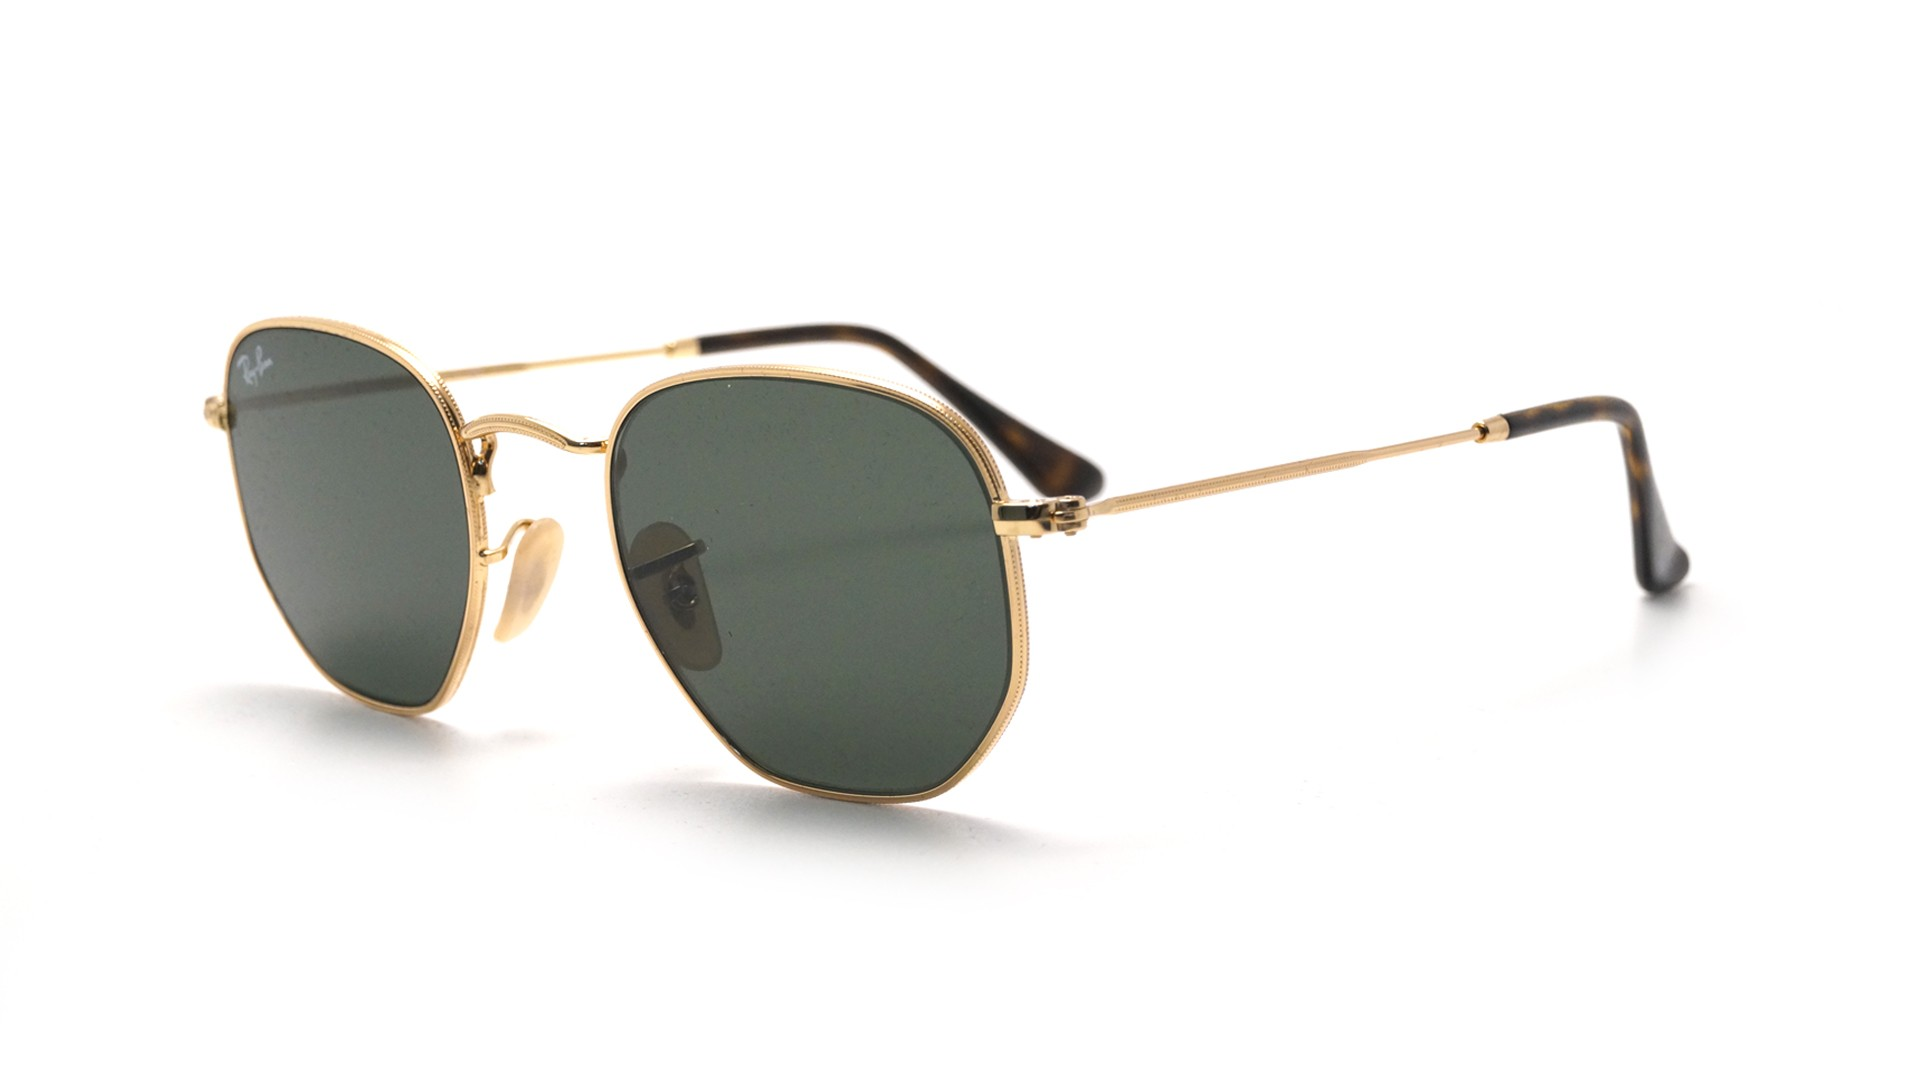 ray-ban-rb3548n-001-51-21-gold-medium-flash